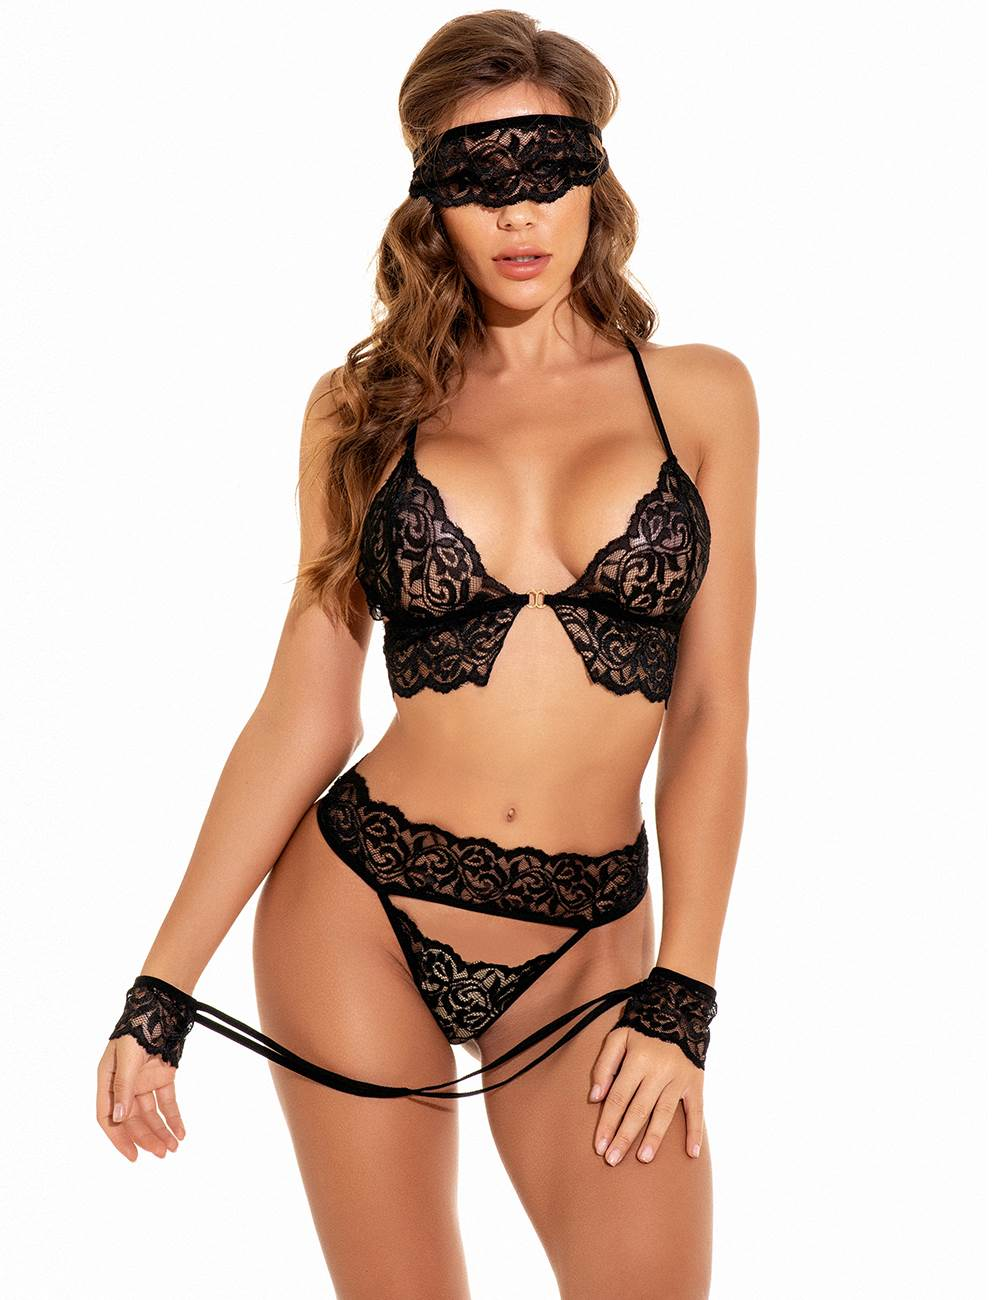 Black Lace Surrender Control Lingerie Bra Set